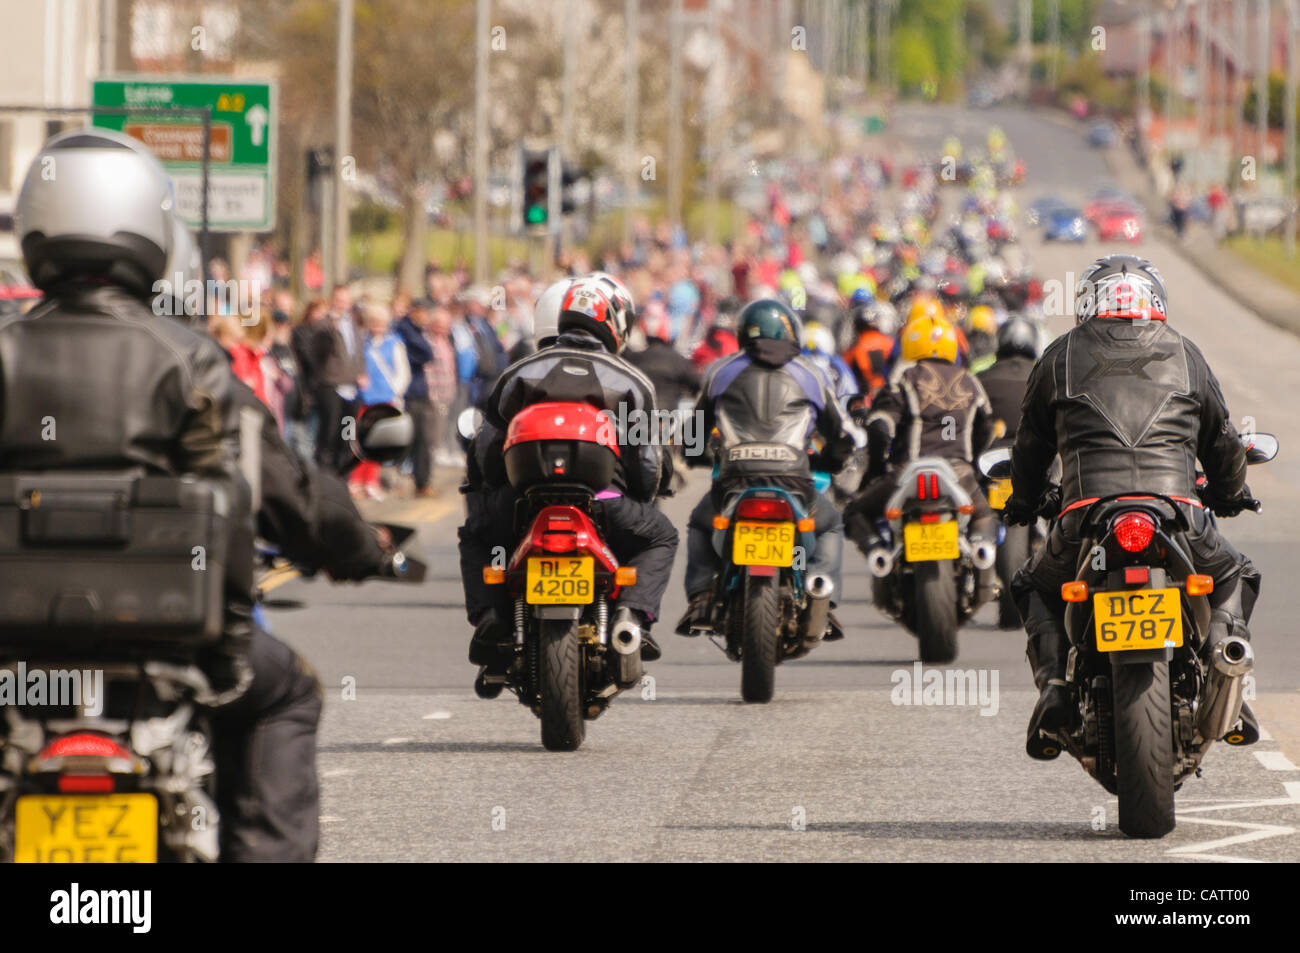 Hundreds of bikers on motorcycles during a charity ride-out. - Stock Image